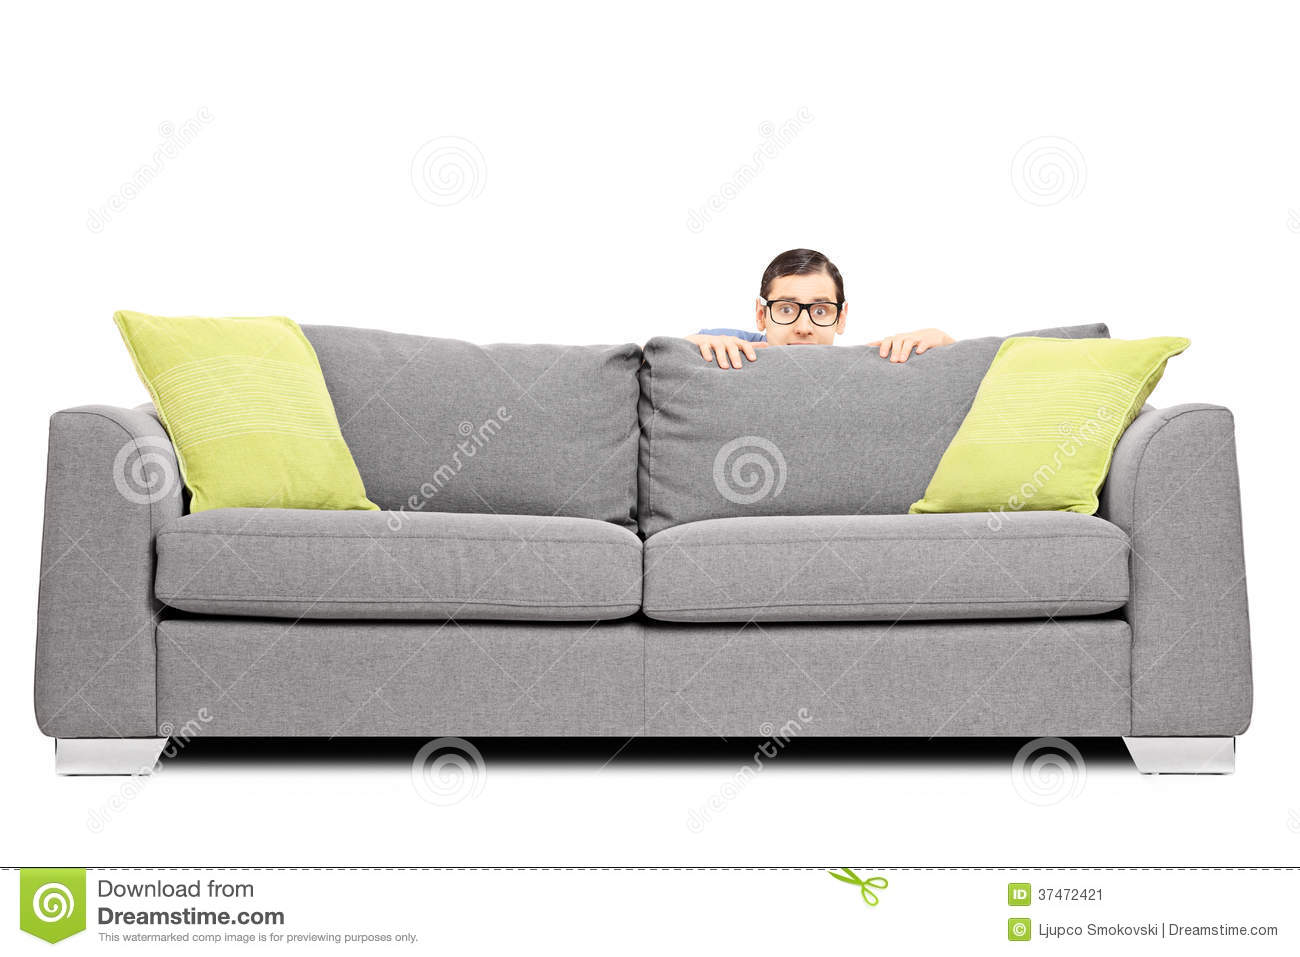 Frightened Man Hiding Behind A Sofa Stock Image - Image: 37472421